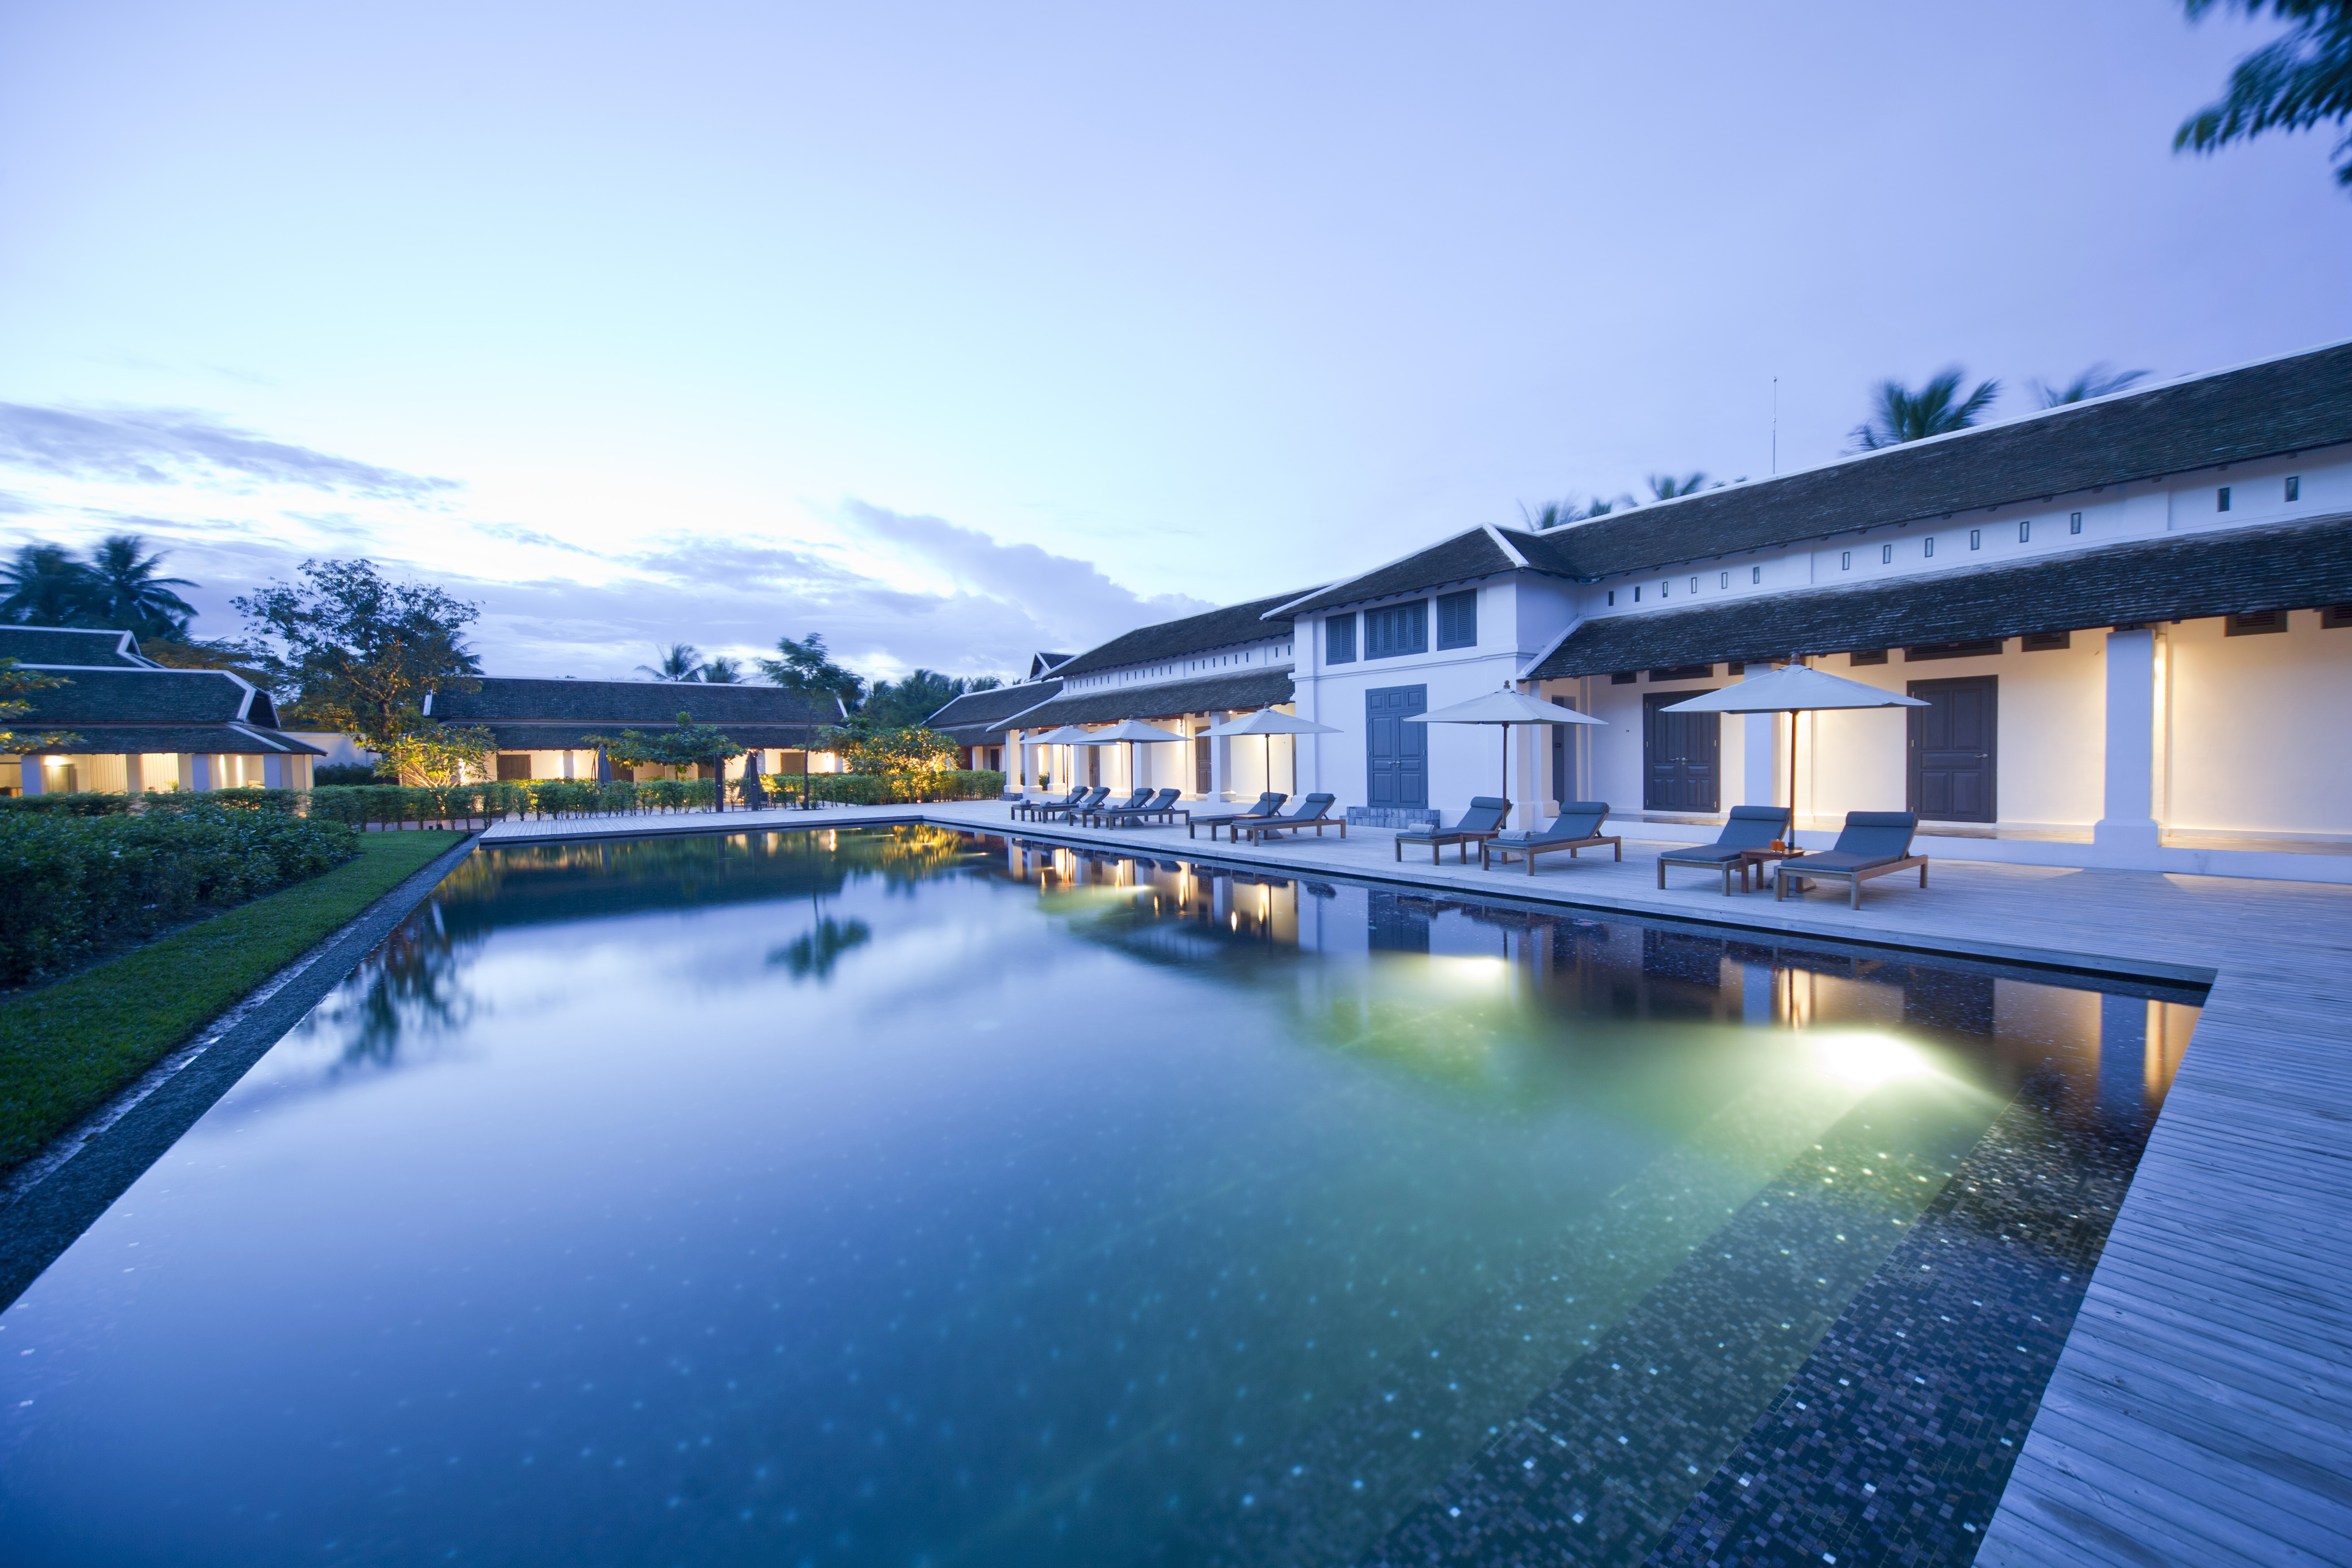 5 star luxury at the sofitel luang prabang laos for Laos hotels 5 star